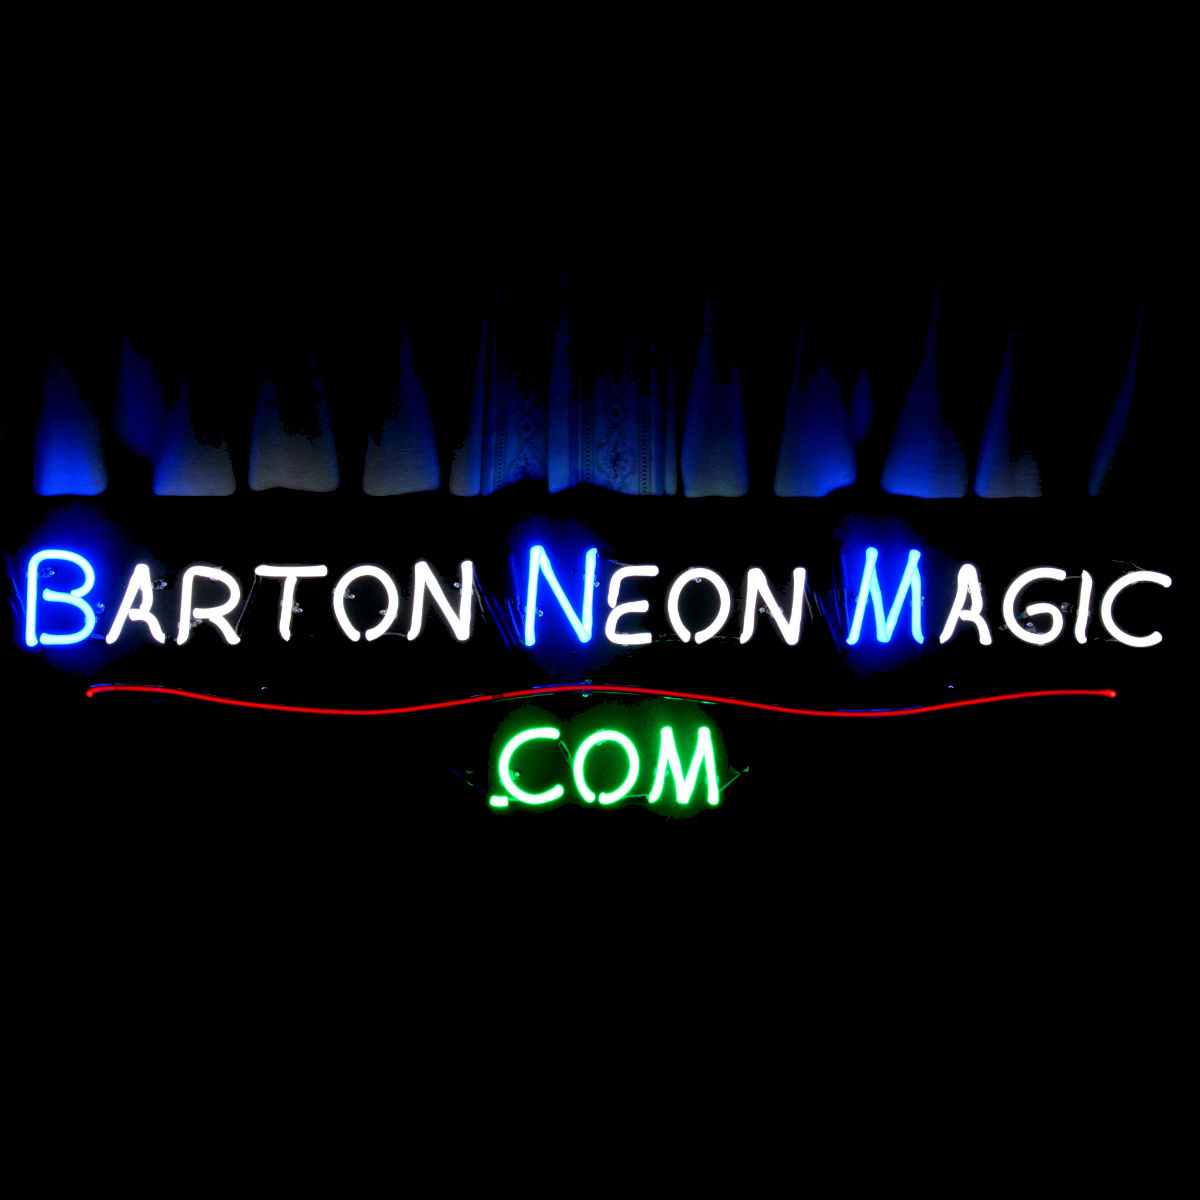 NEW CAR DEALERSHIP NEON SIGNS by John Barton - BartonNeonMagic.com